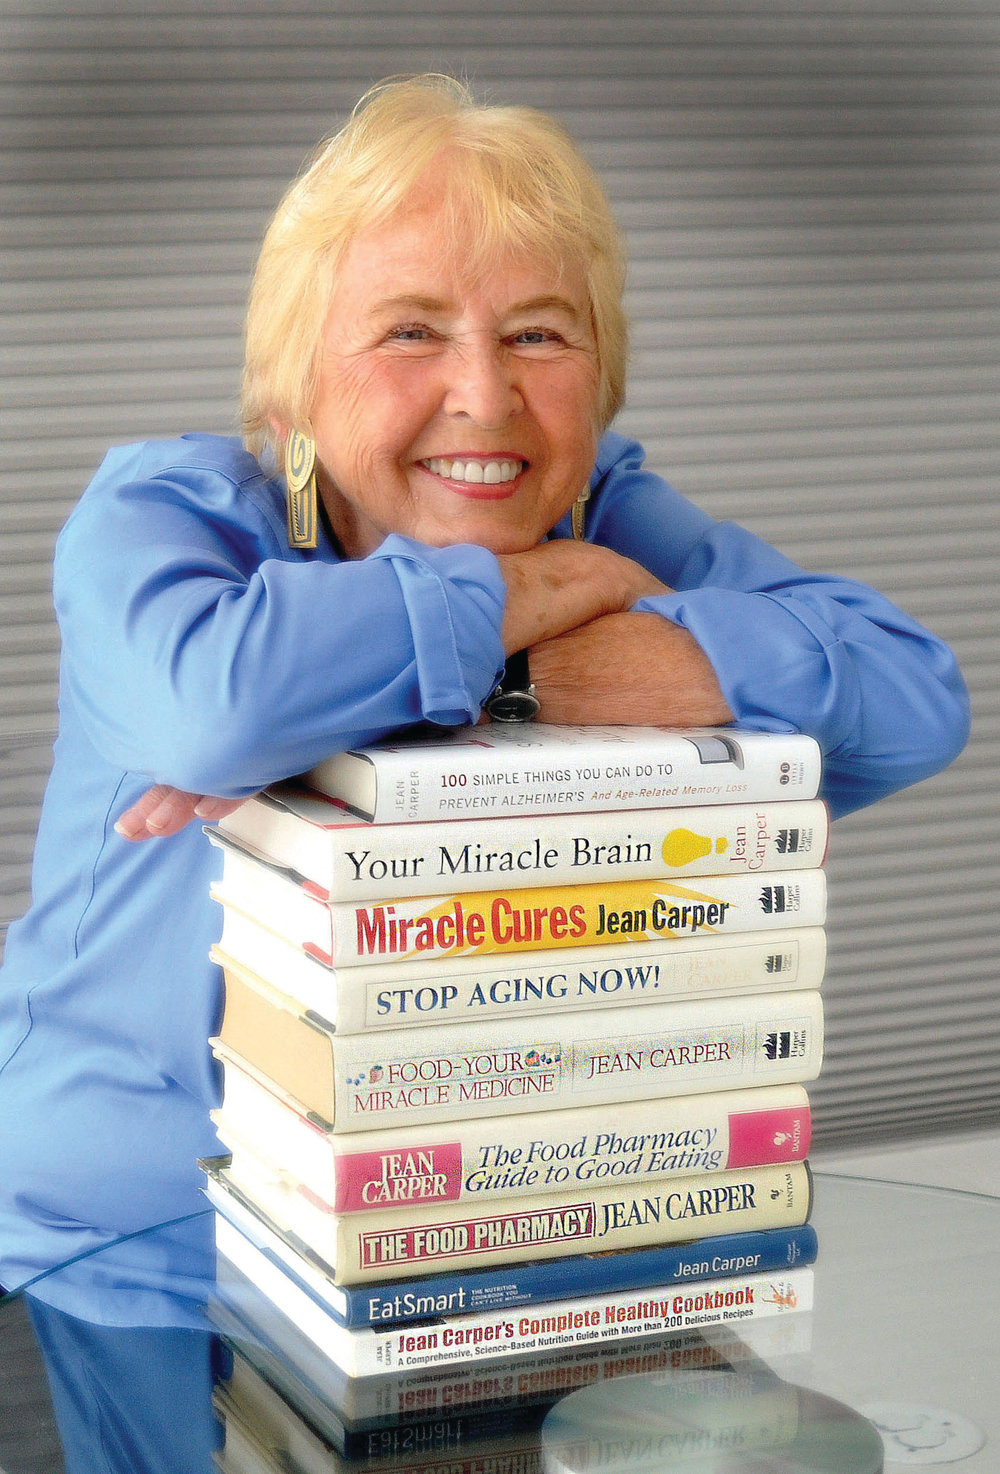 Jean Carper is the best-selling author of 24 books, most on health, nutrition, aging and the brain. (Photo by Richard Watherwax.)